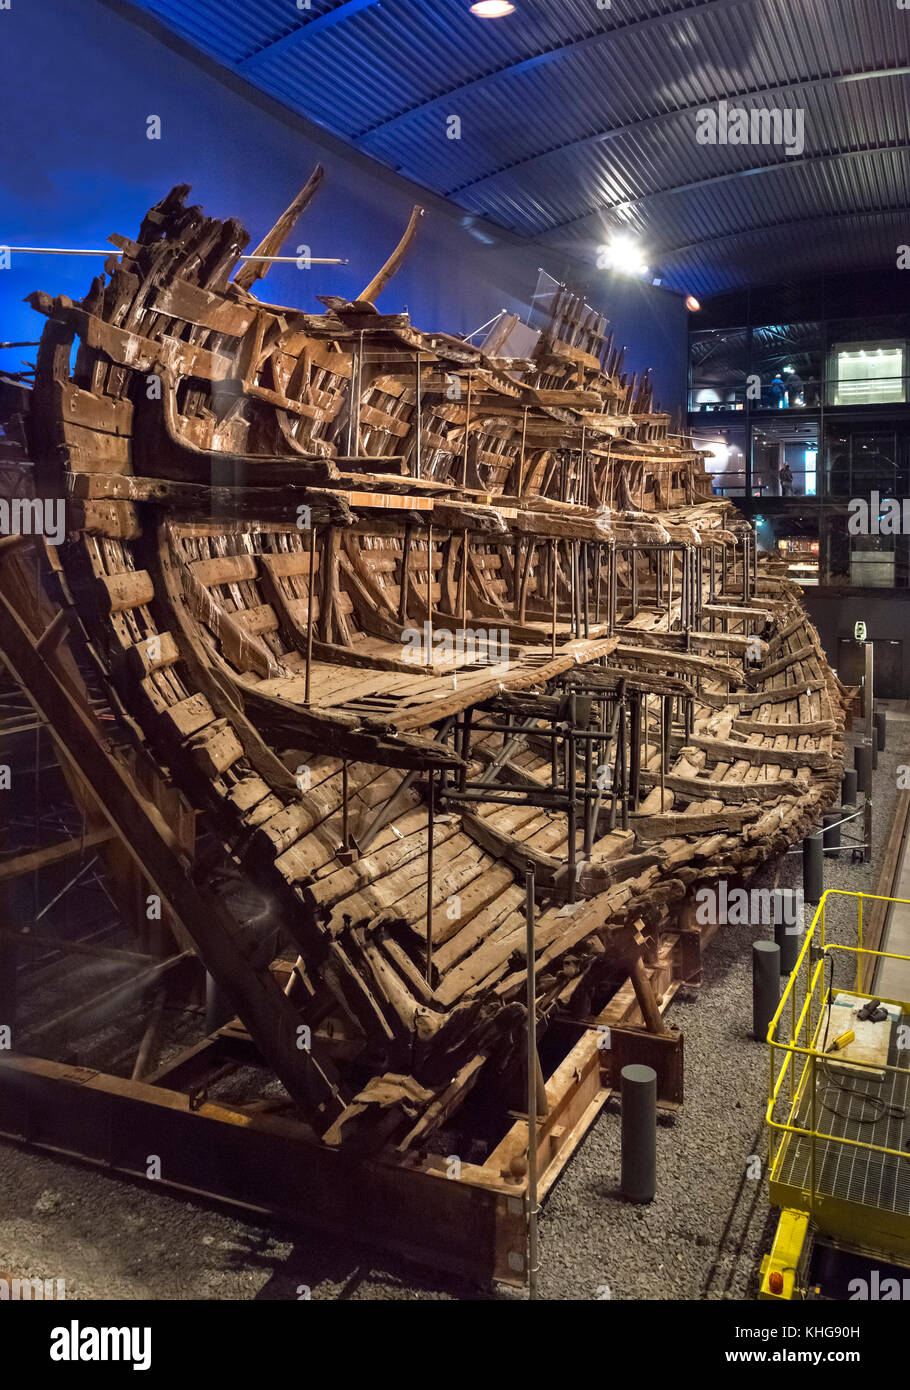 The wreck of the Mary Rose in the Mary Rose Museum, Portsmouth Historic Dockyard, Hampshire, England, UK - Stock Image